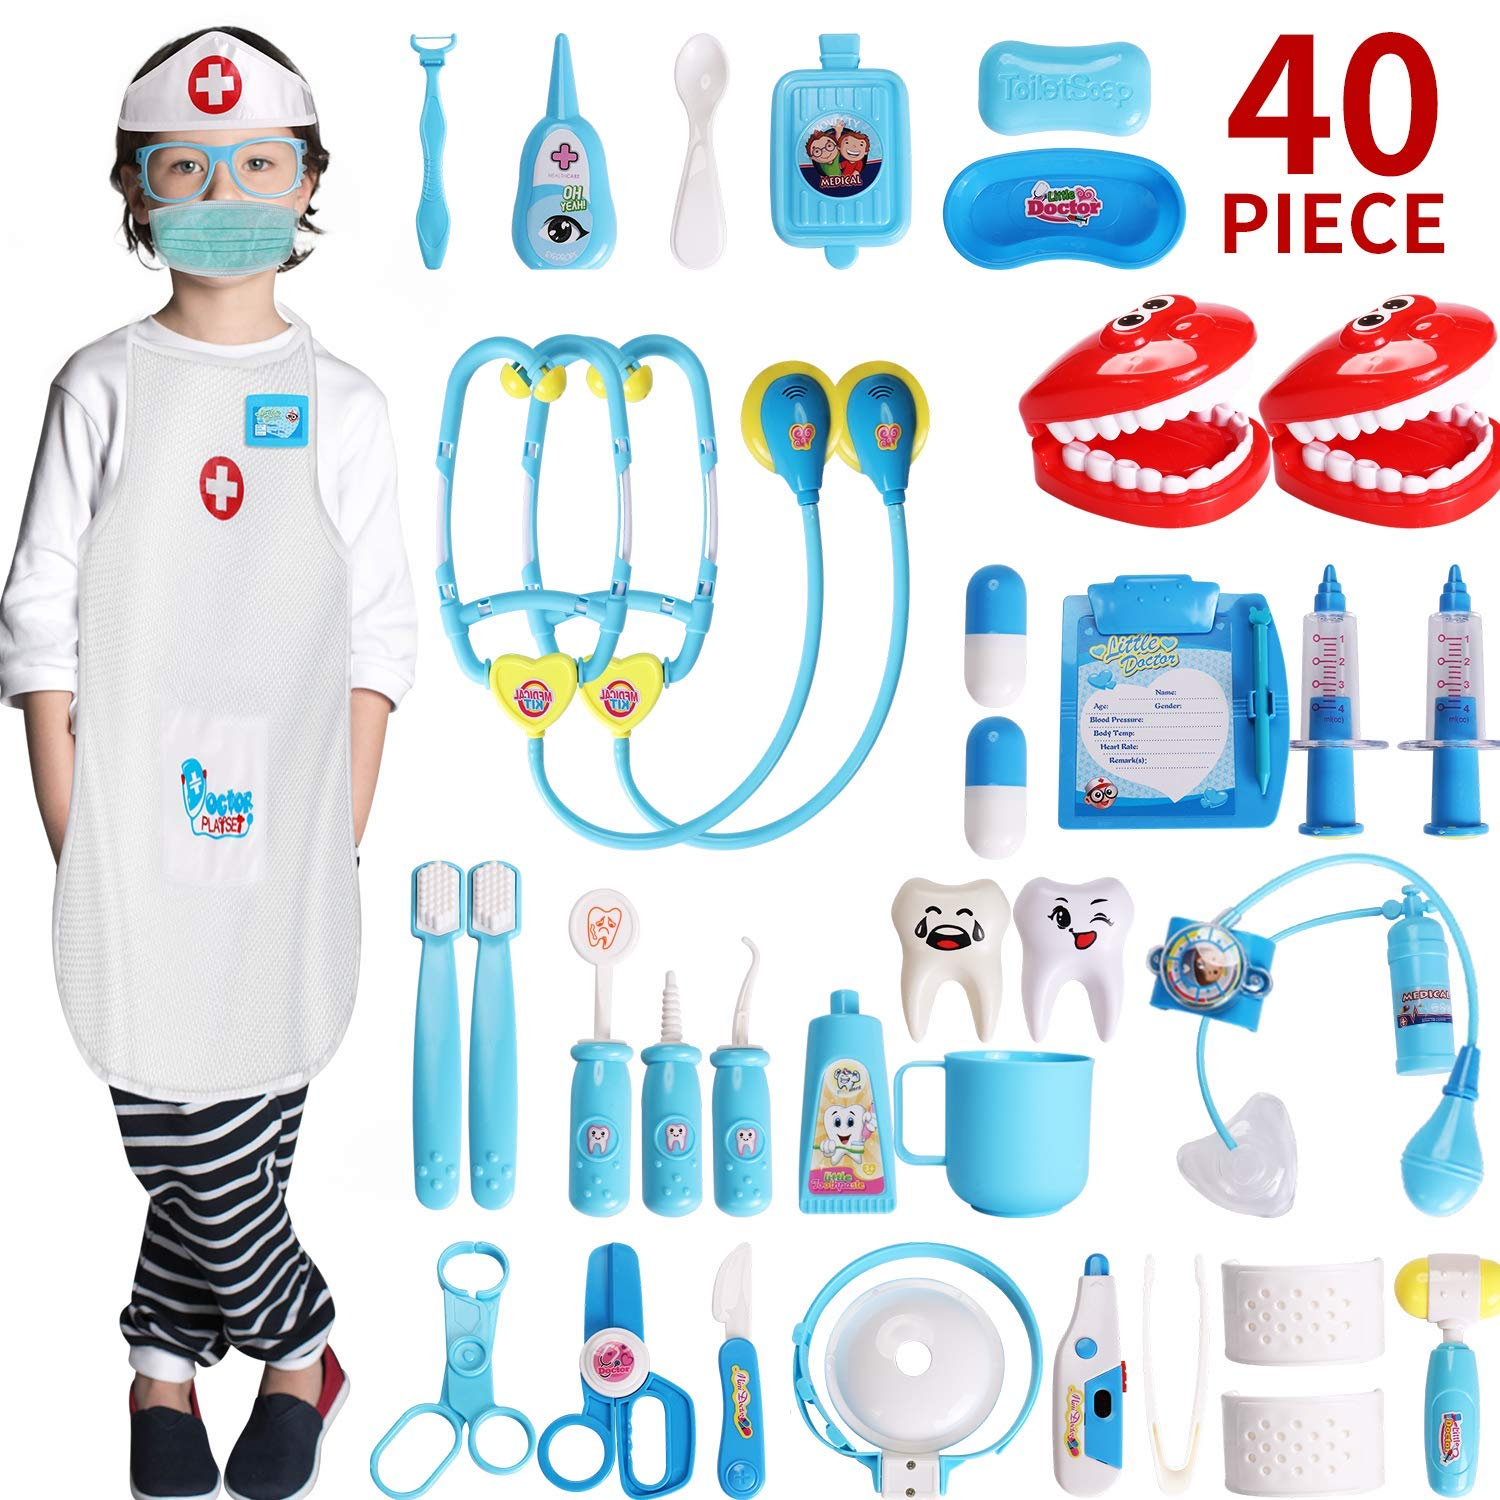 XINSHI 40 PCS Durable Dole Play Toys Kids Doctor Kits Containing Thermometers / Blood Pressure Monitors / Dental Equipment in Drawstring Bag